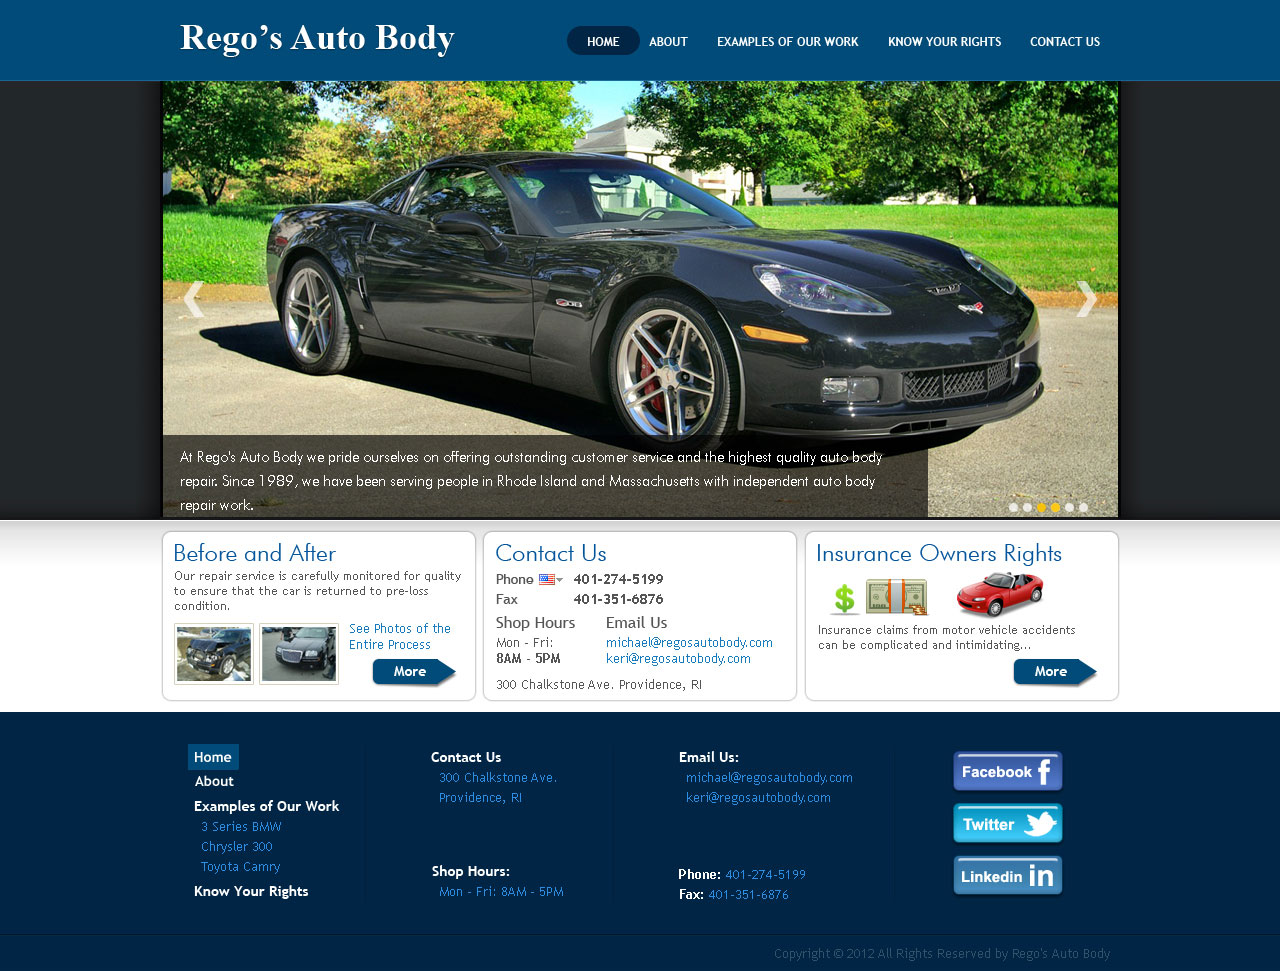 Website for Rego's Auto Body